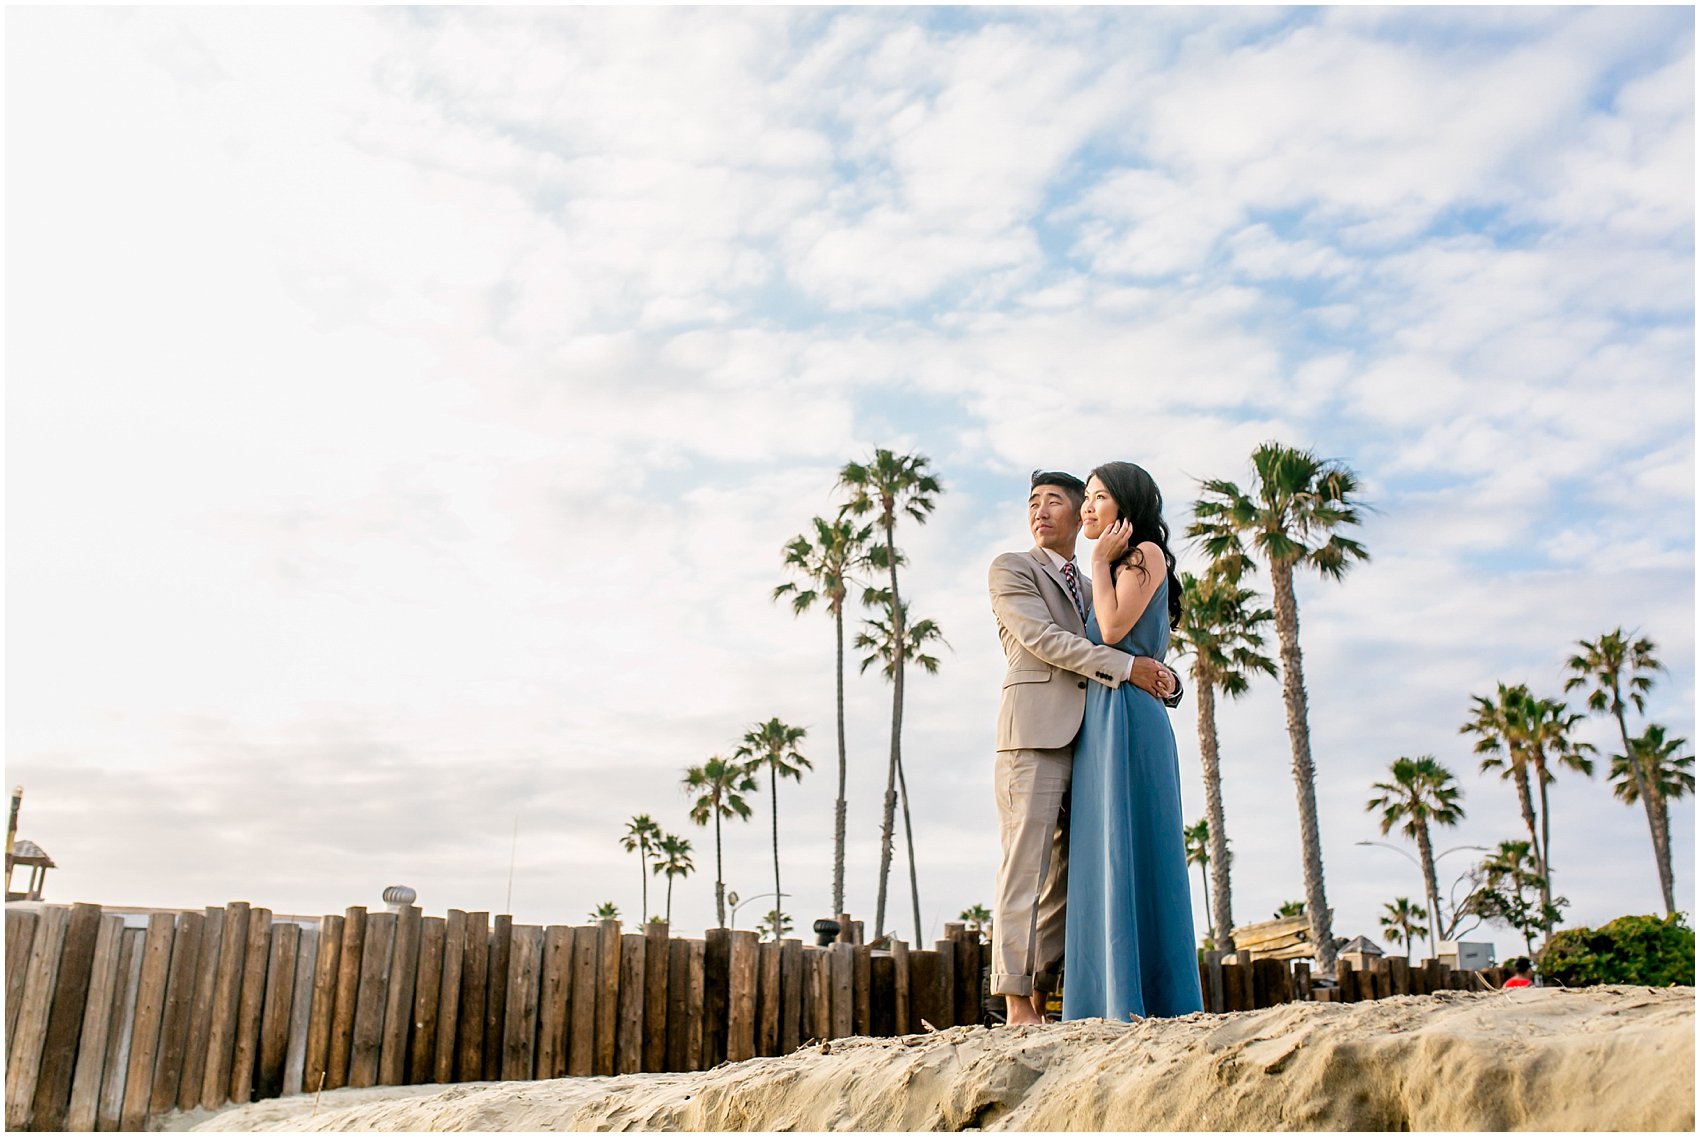 Newport Beach Engagement Photography Smetona Photo Bonnie Tim-0014.jpg